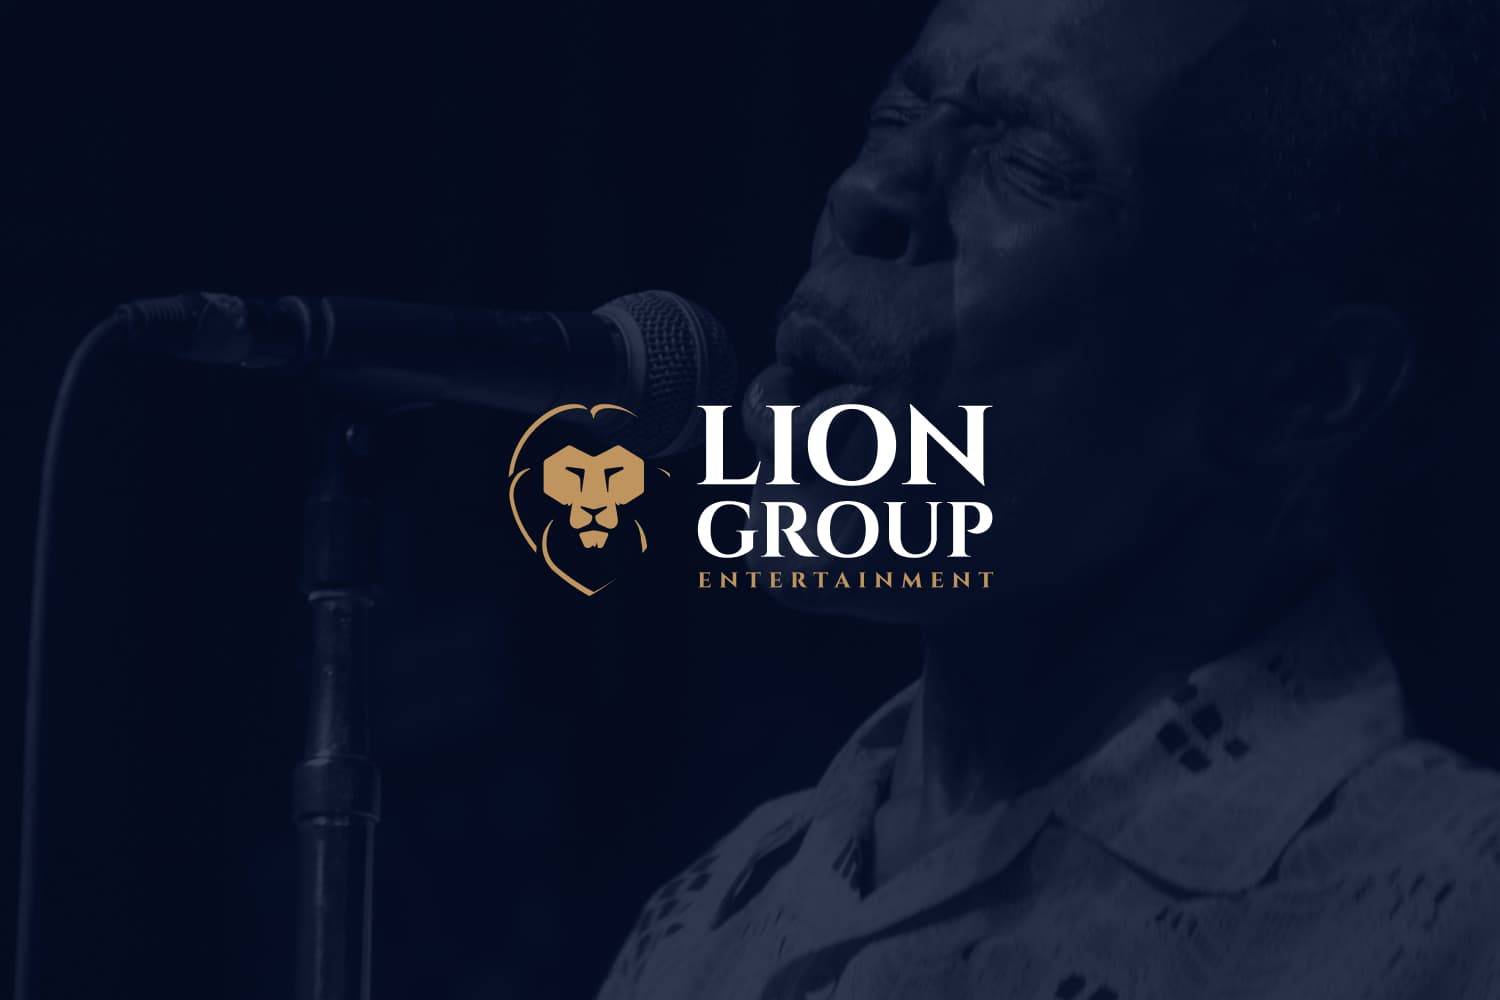 Lion Group Entertainment